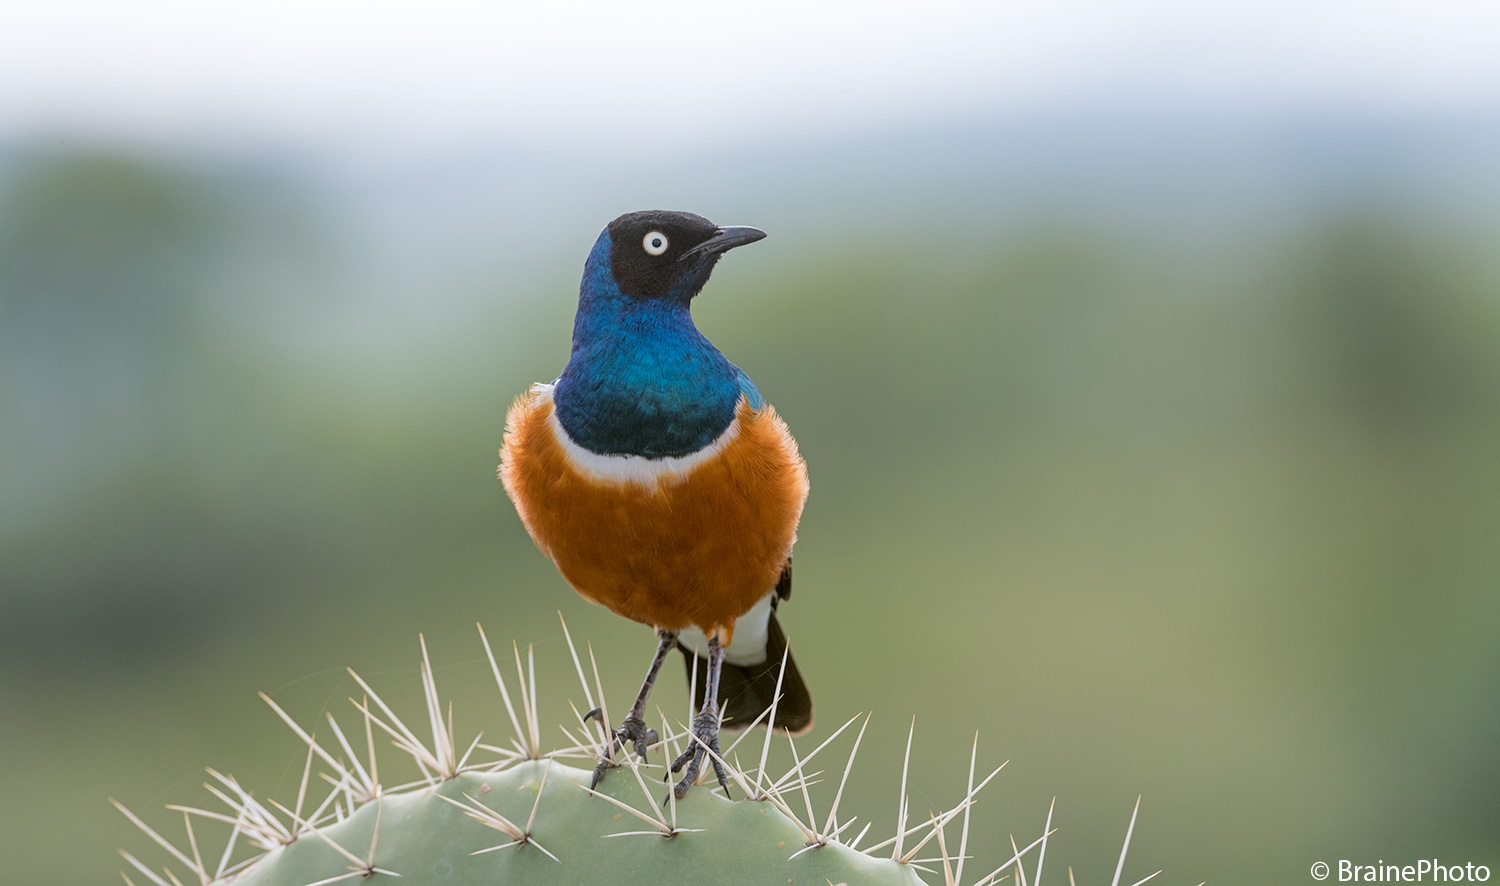 Our Ethiopian Birding Tours offers an unforgettable experience and a great opportunity to view Ethiopia's magical wildlife, such as this Superb Starling